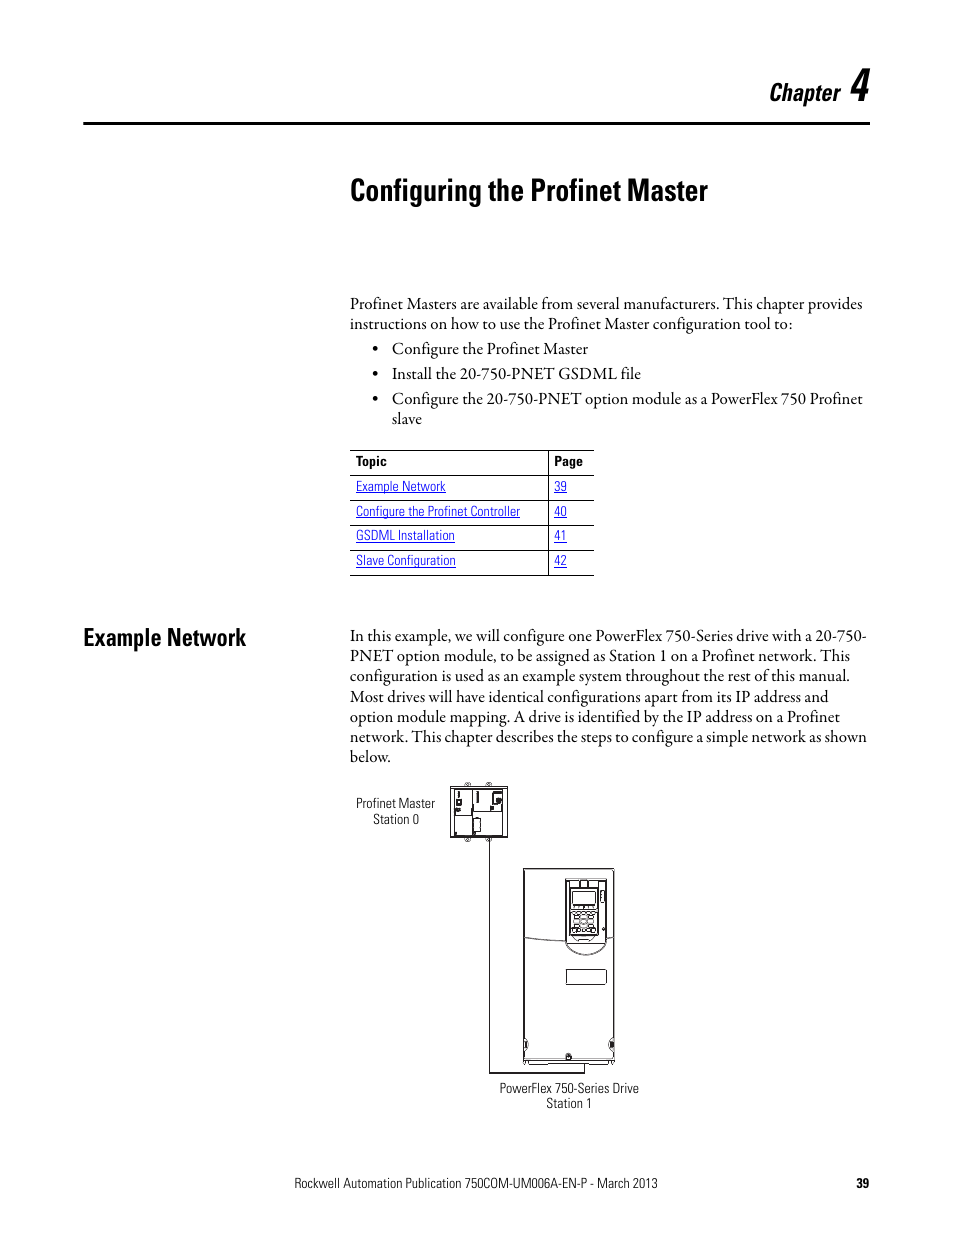 Chapter 4, Configuring the profinet master, Example network